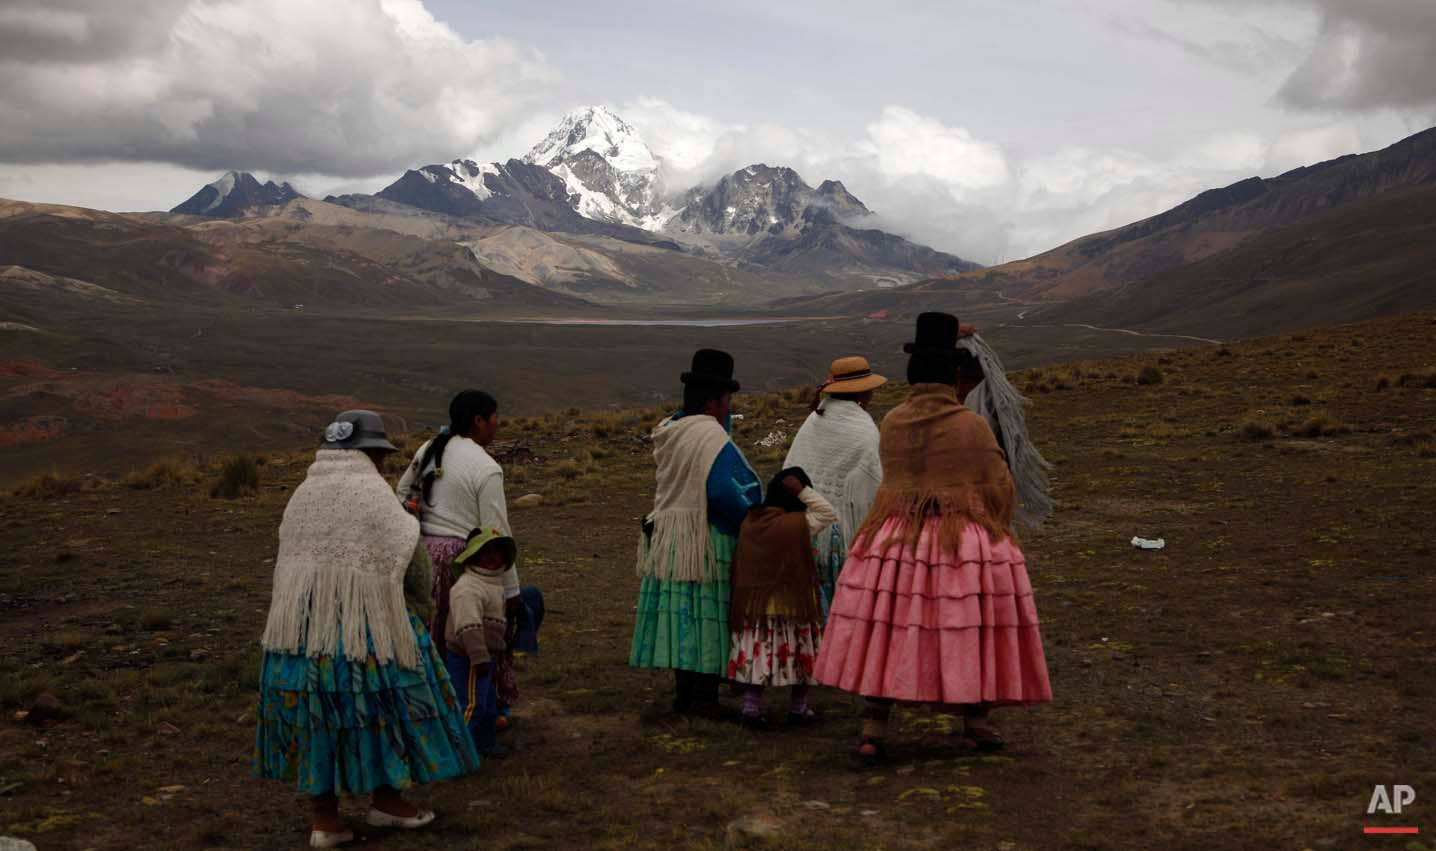 """In this Dec. 16, 2015 photo, Aymara indigenous women look at the Huayna Potosi mountain before climbing it on the outskirts of El Alto, Bolivia. At first glance, the women known as """"cholitas"""" don't look much like mountain climbers, with their colorful, multilayered skirts and fringed shawls, but they've been climbing for 15 years, cooking and carrying food for tourists who climb to the peak. (AP Photo/Juan Karita)"""